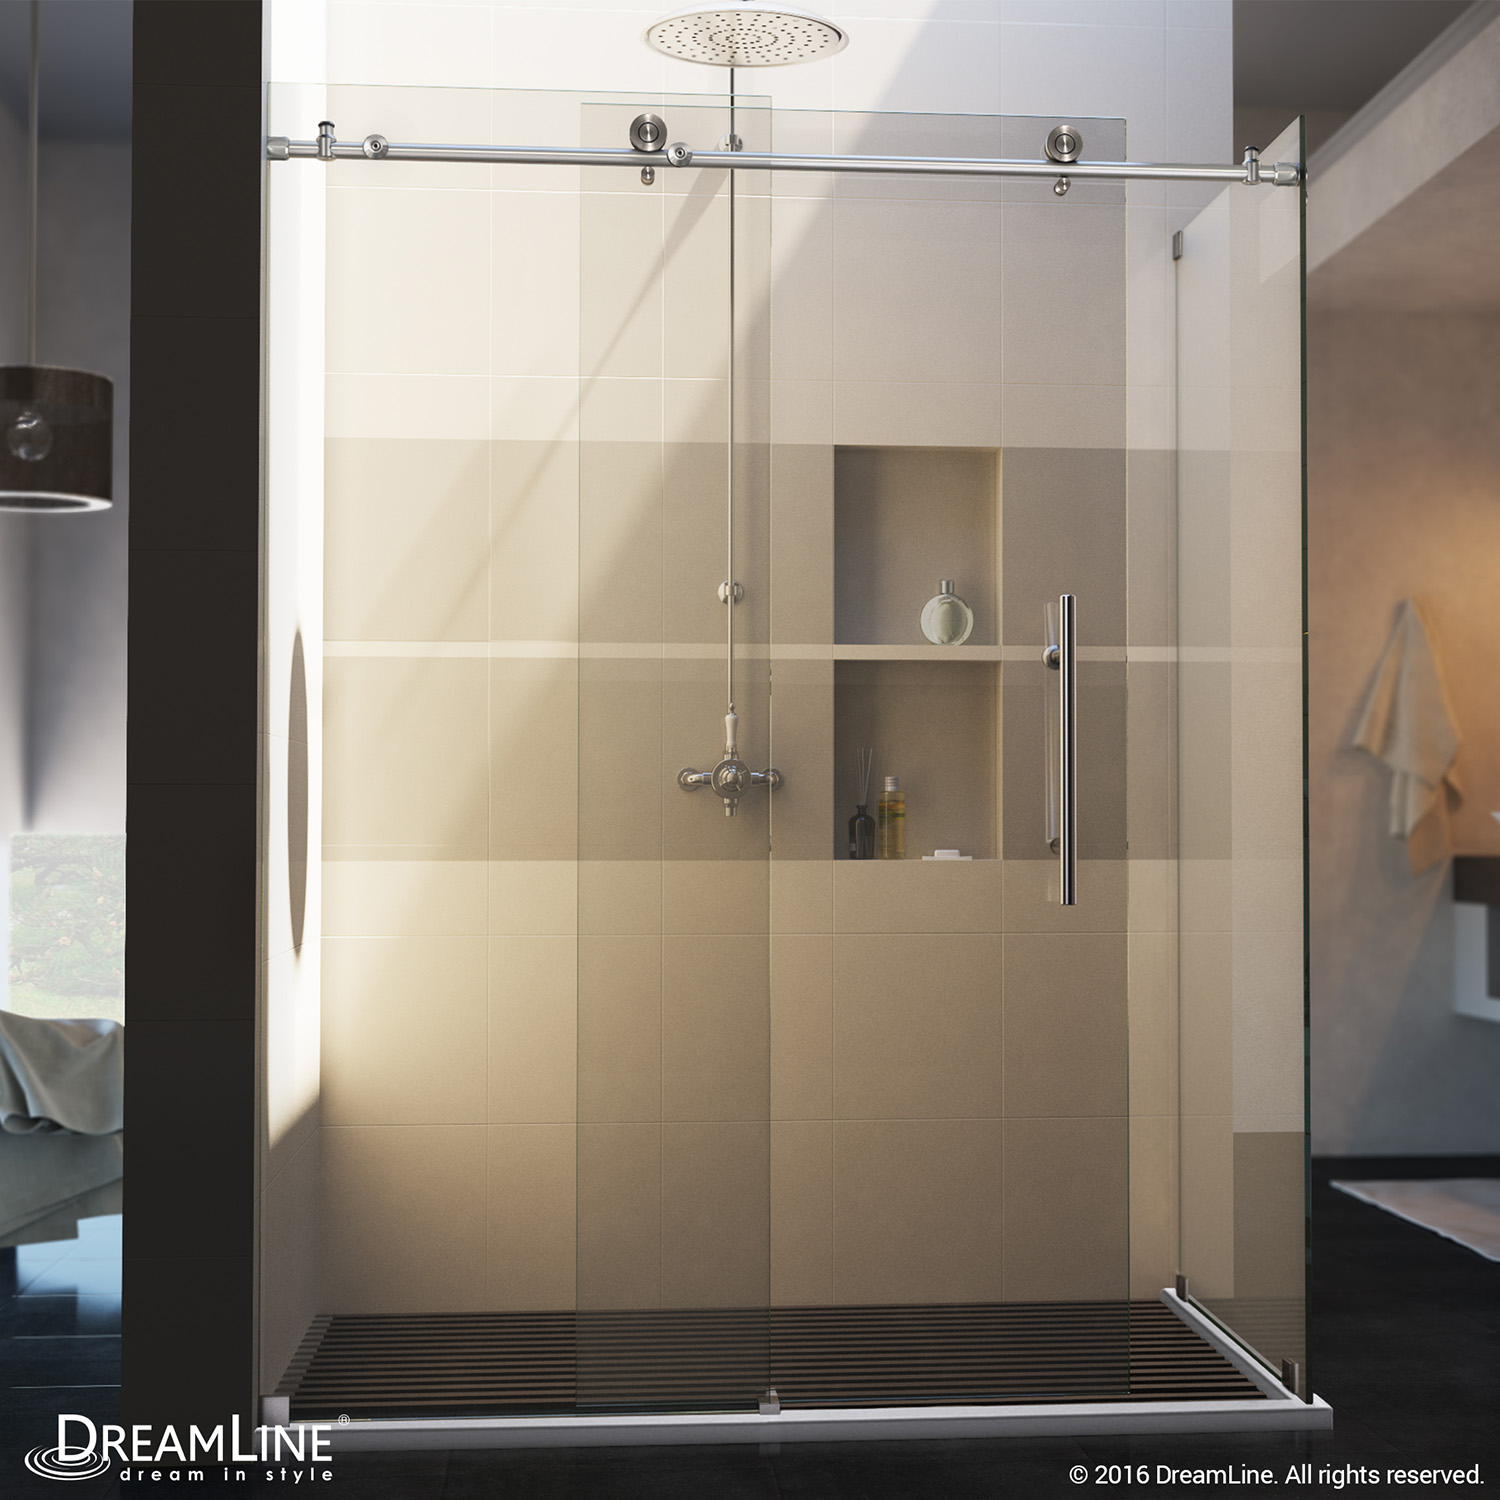 doors door bathroom size images decor screen full photo wondrous impressive chic custom to shower frameless in enigma bathtub bathtubs x